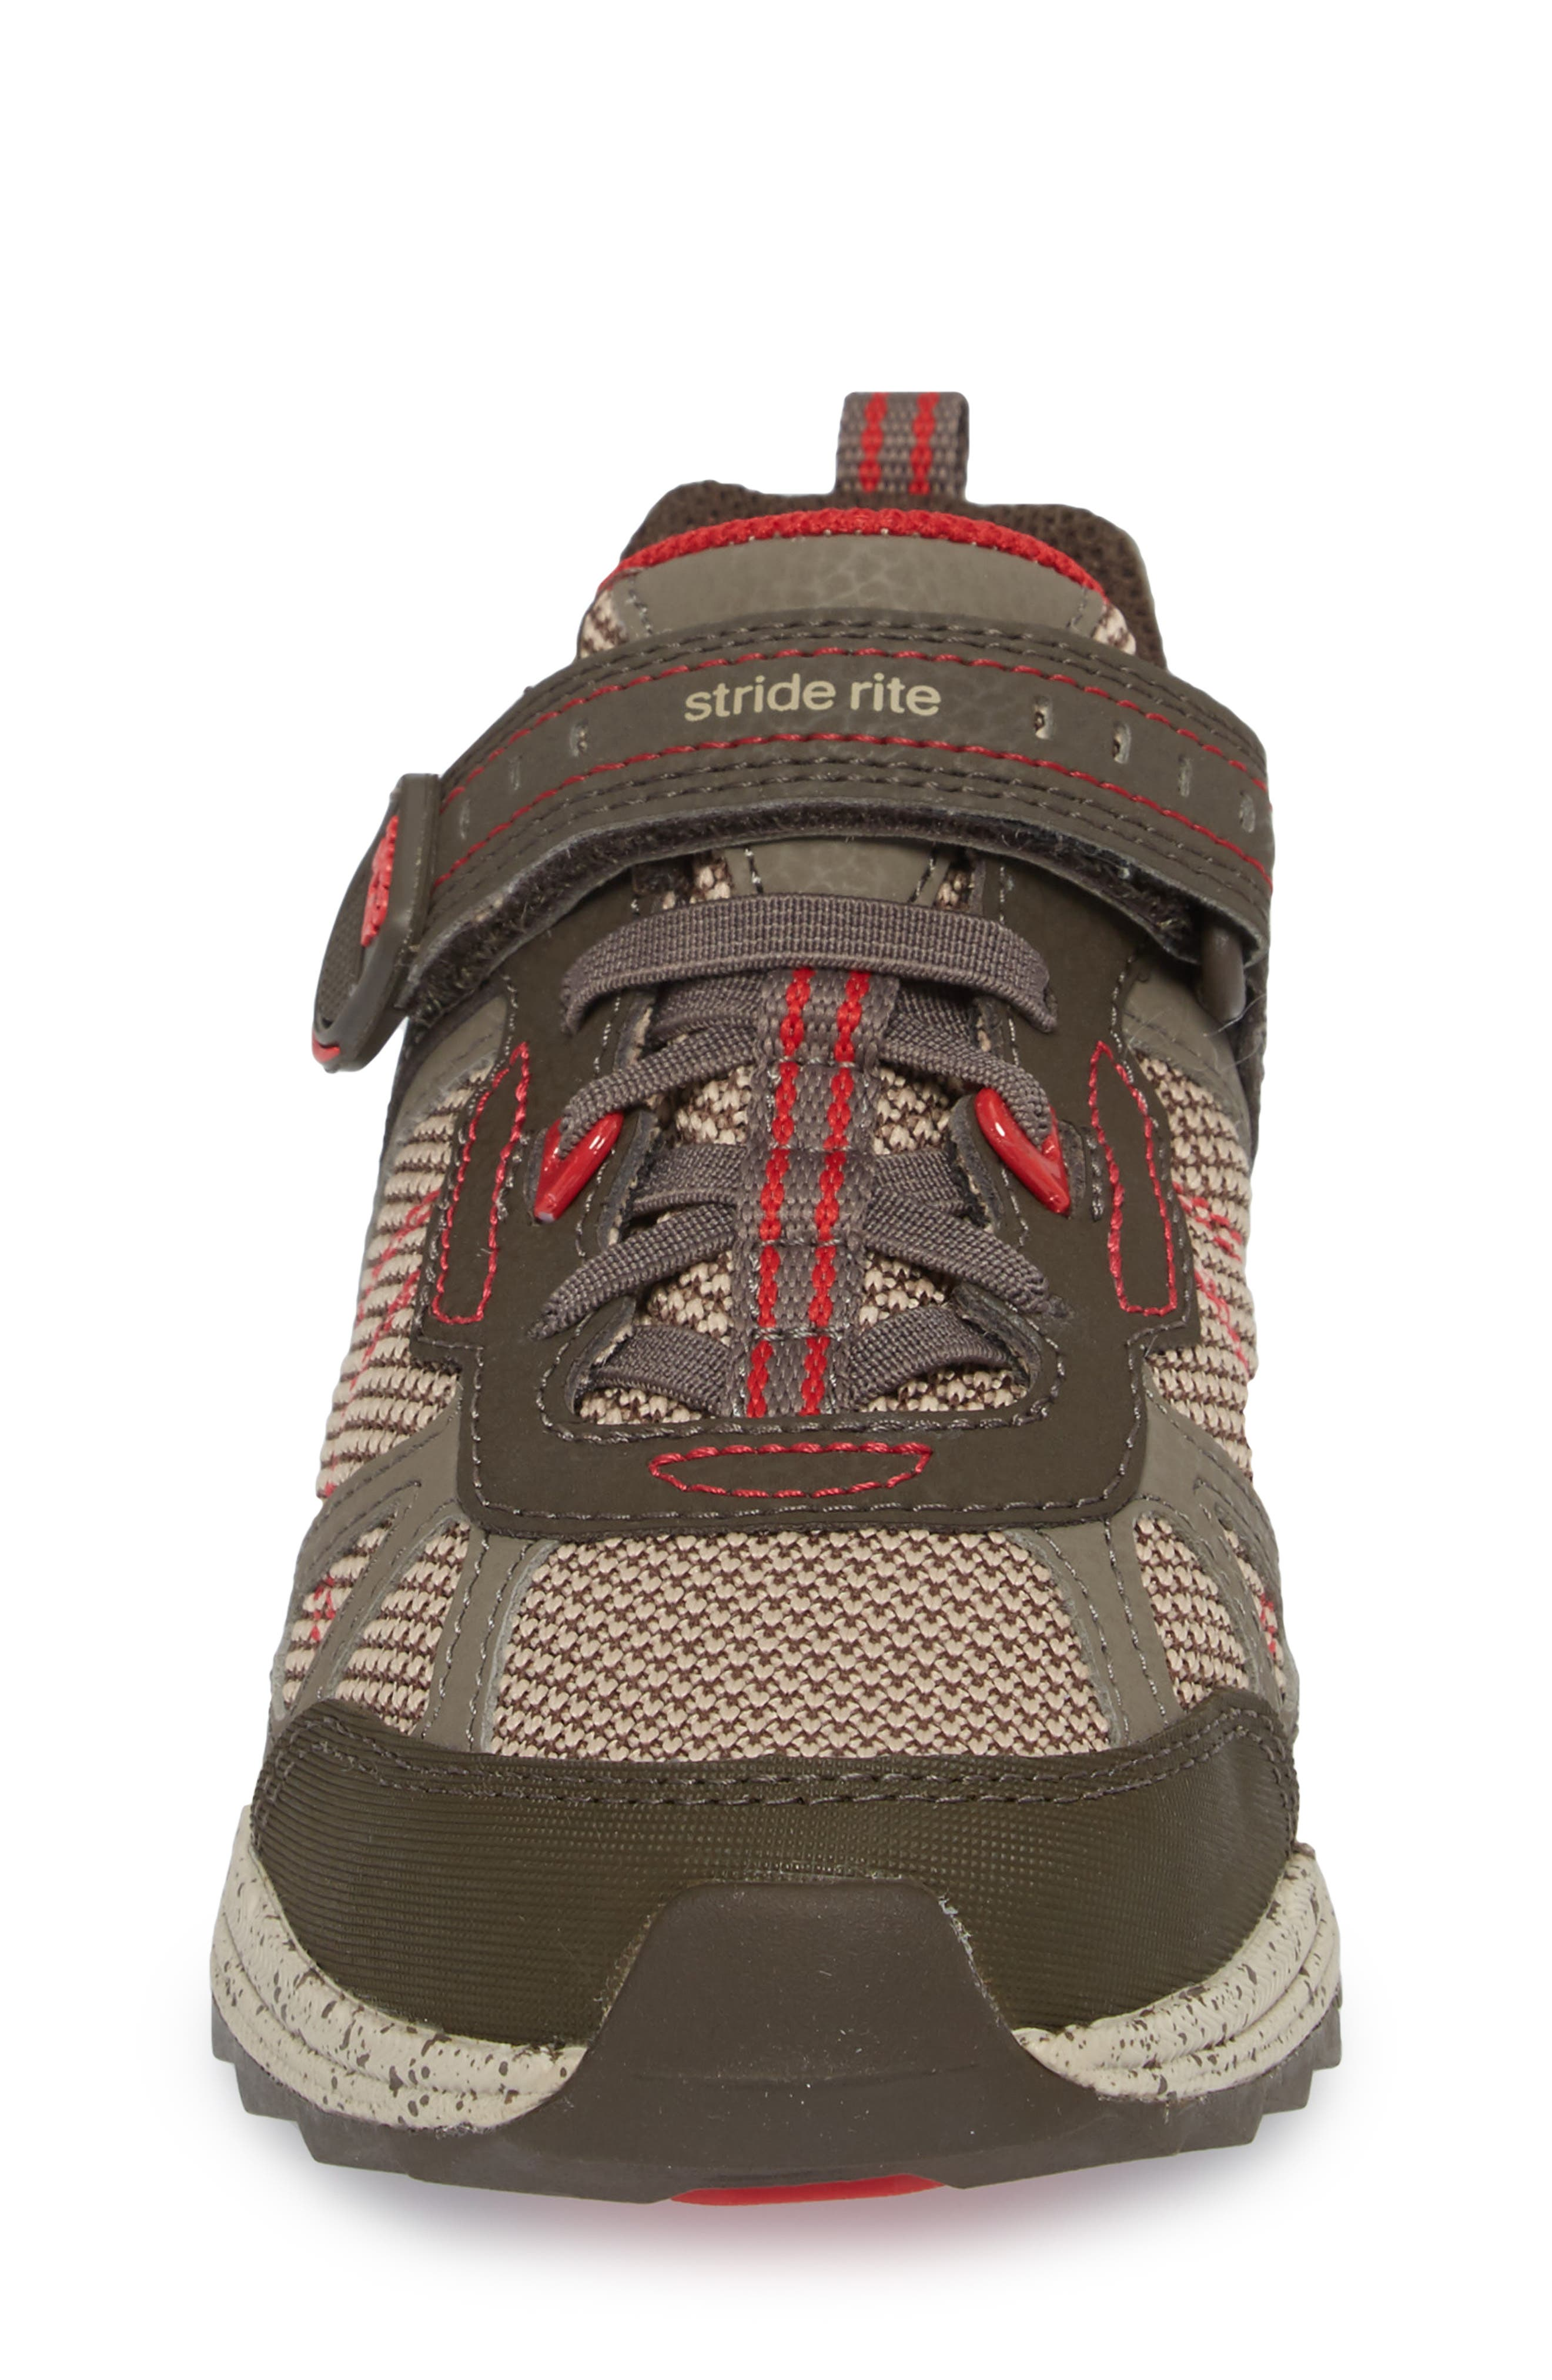 Made2Play<sup>®</sup> Owen Washable Sneaker,                             Alternate thumbnail 4, color,                             BROWN LEATHER/ TEXTILE